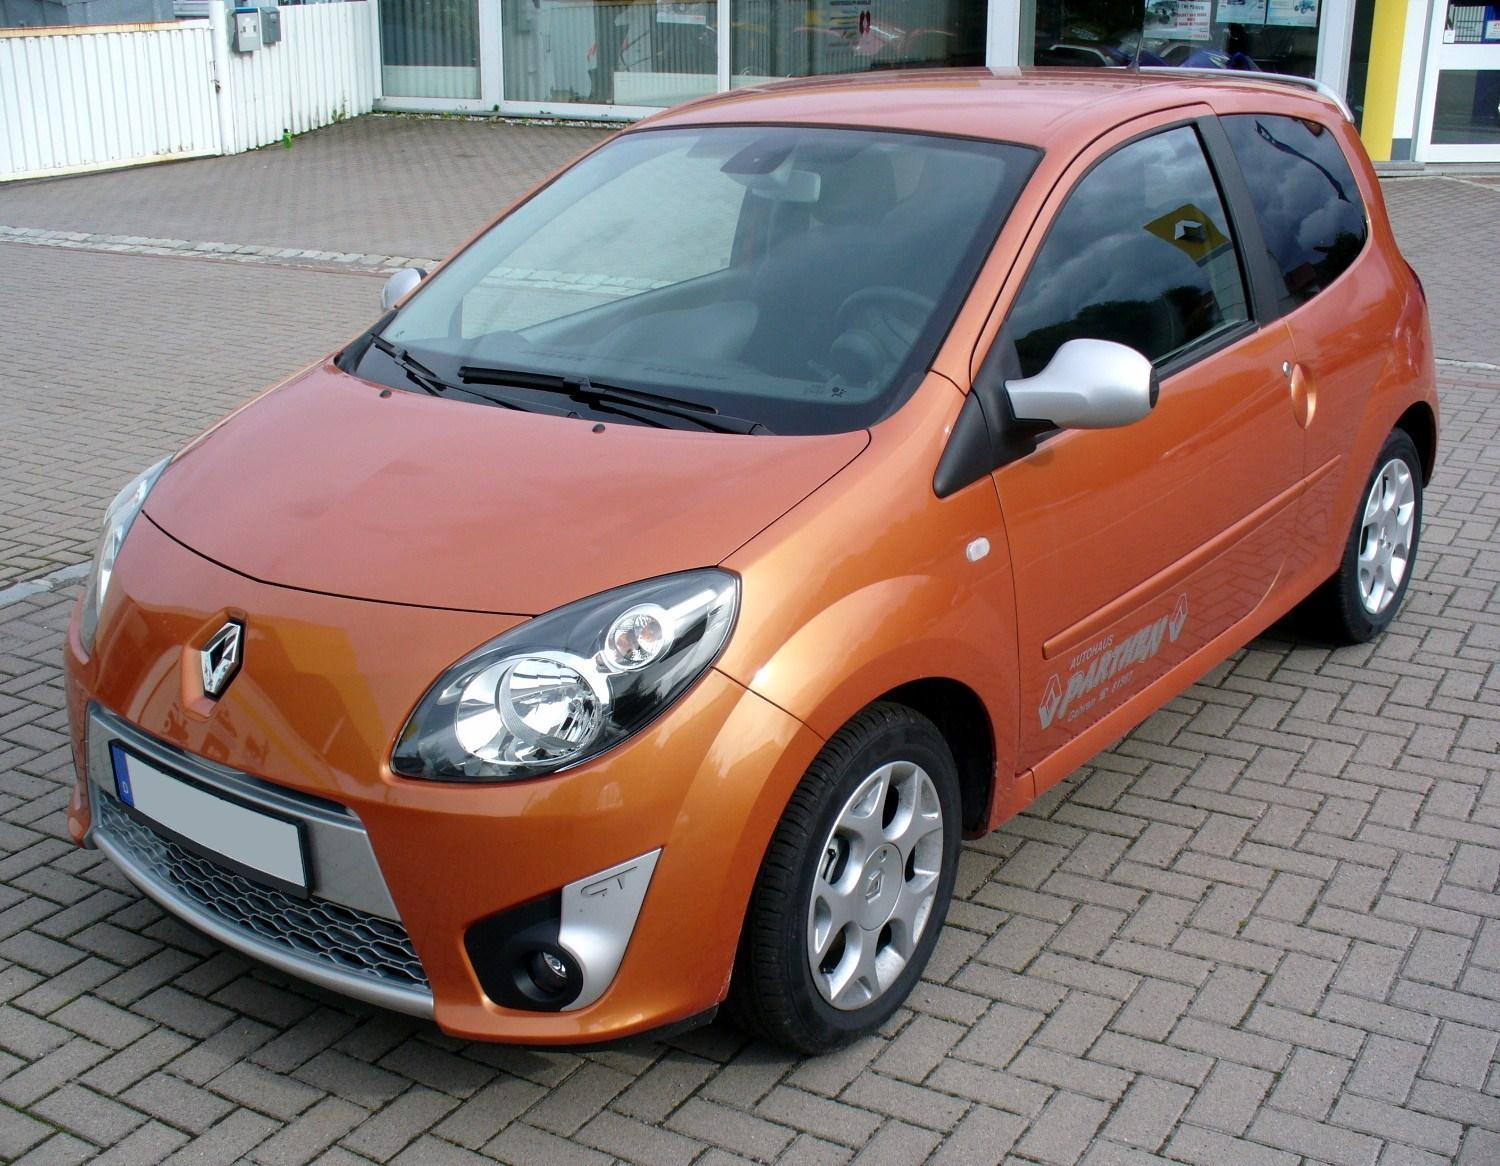 file renault twingo ii phse i gt funken orange jpg. Black Bedroom Furniture Sets. Home Design Ideas